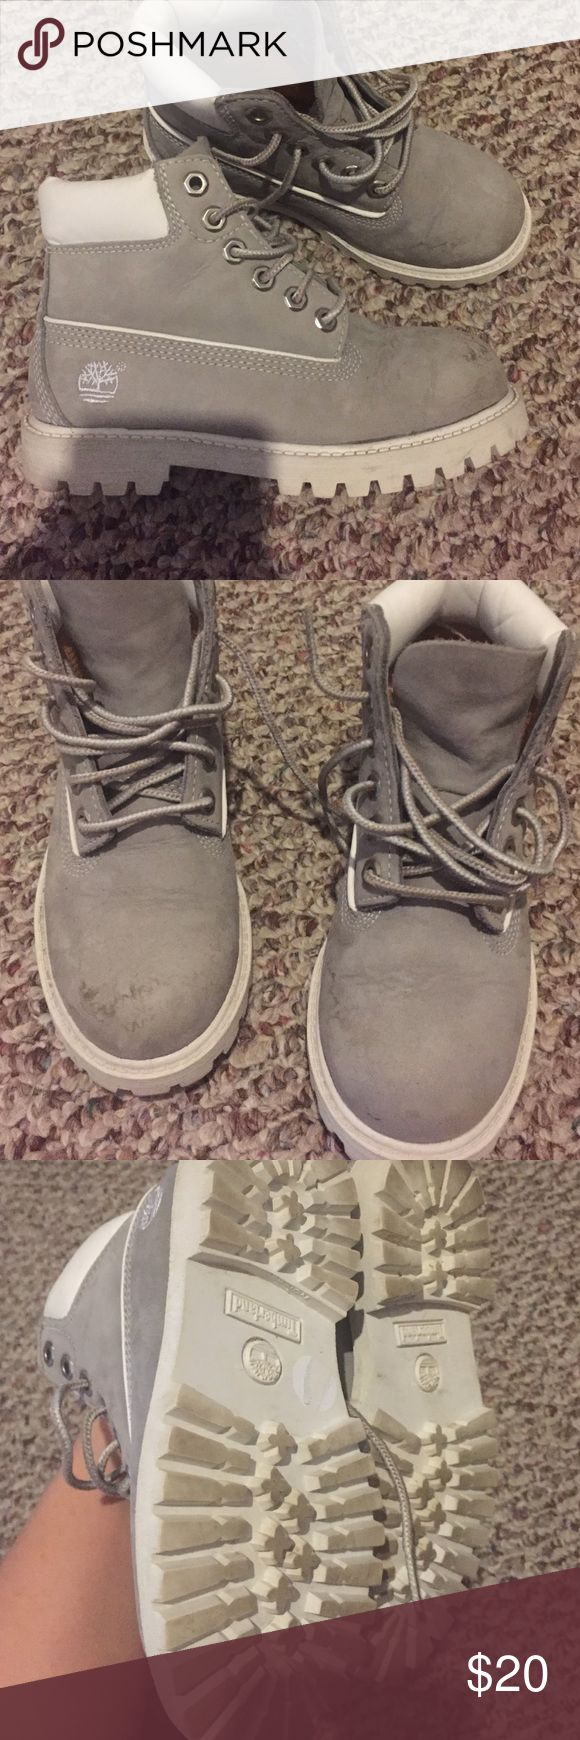 Toddler Timberland Boots 11.5 Good conditions with marks as shown in picture. Barely worn. Size 11.5 Timberland Shoes Boots